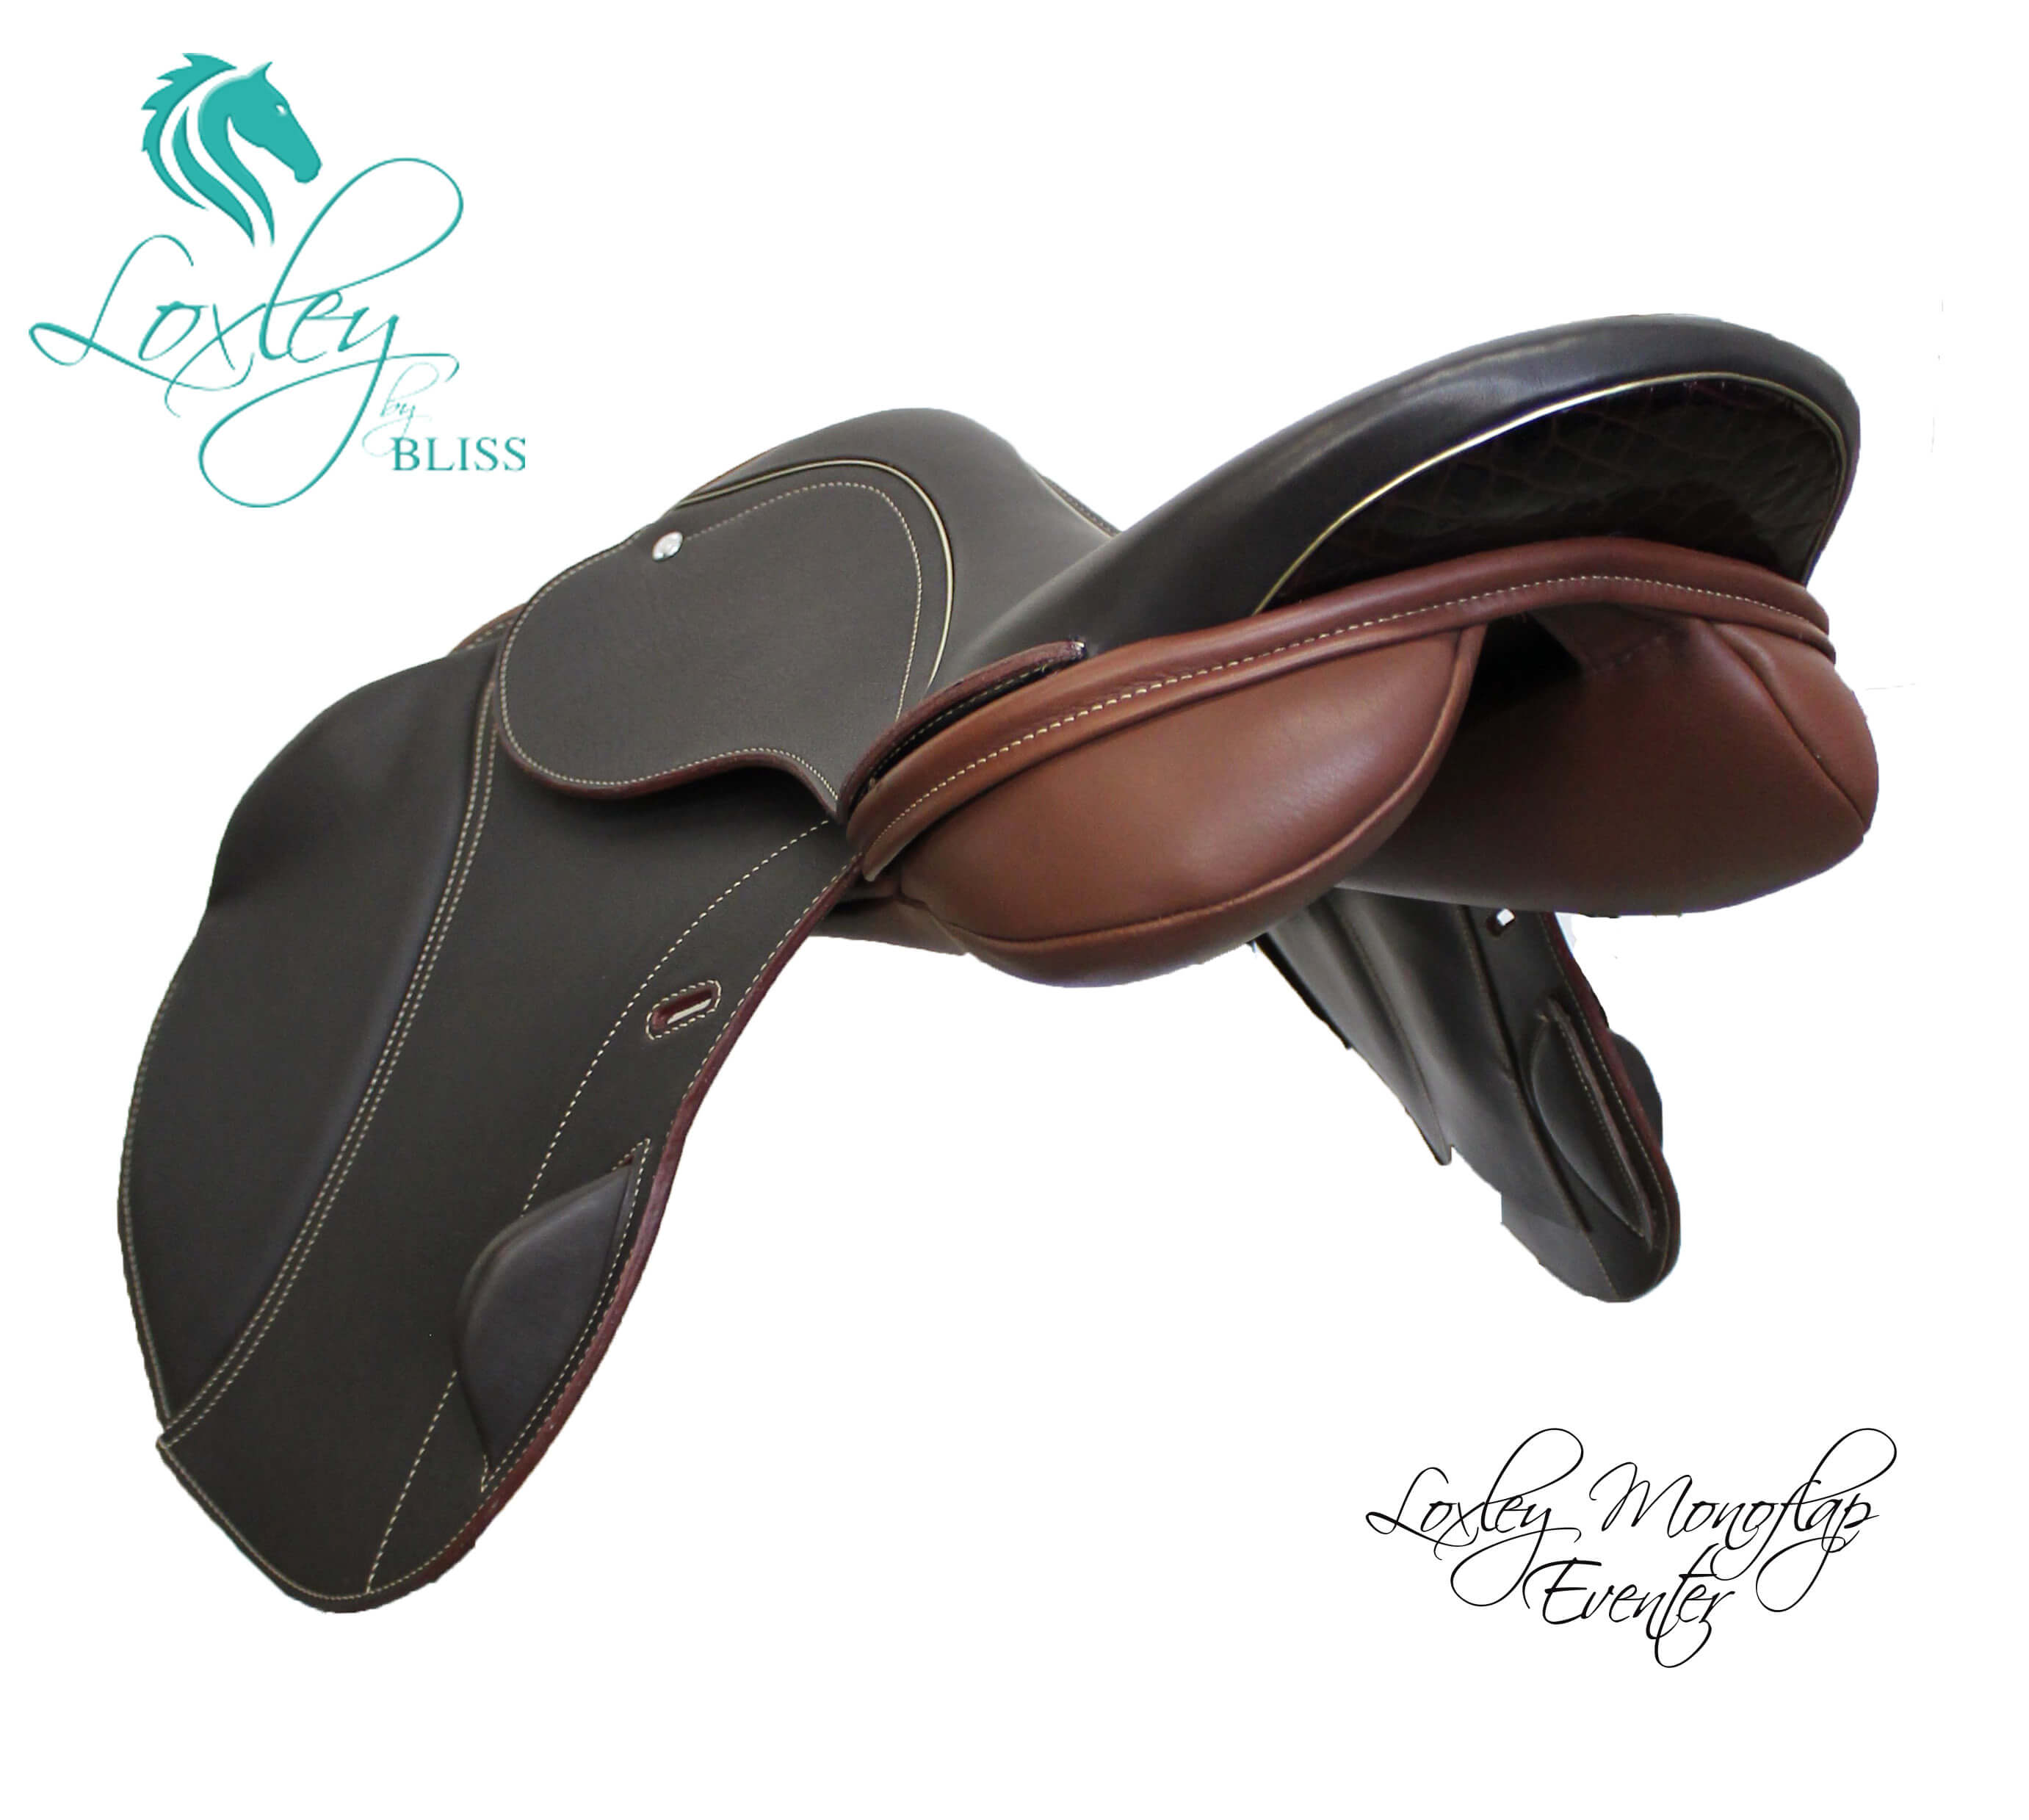 1A Product image - loxley monoflap eventer - claret & gold side angle Loxley Saddle Image Template